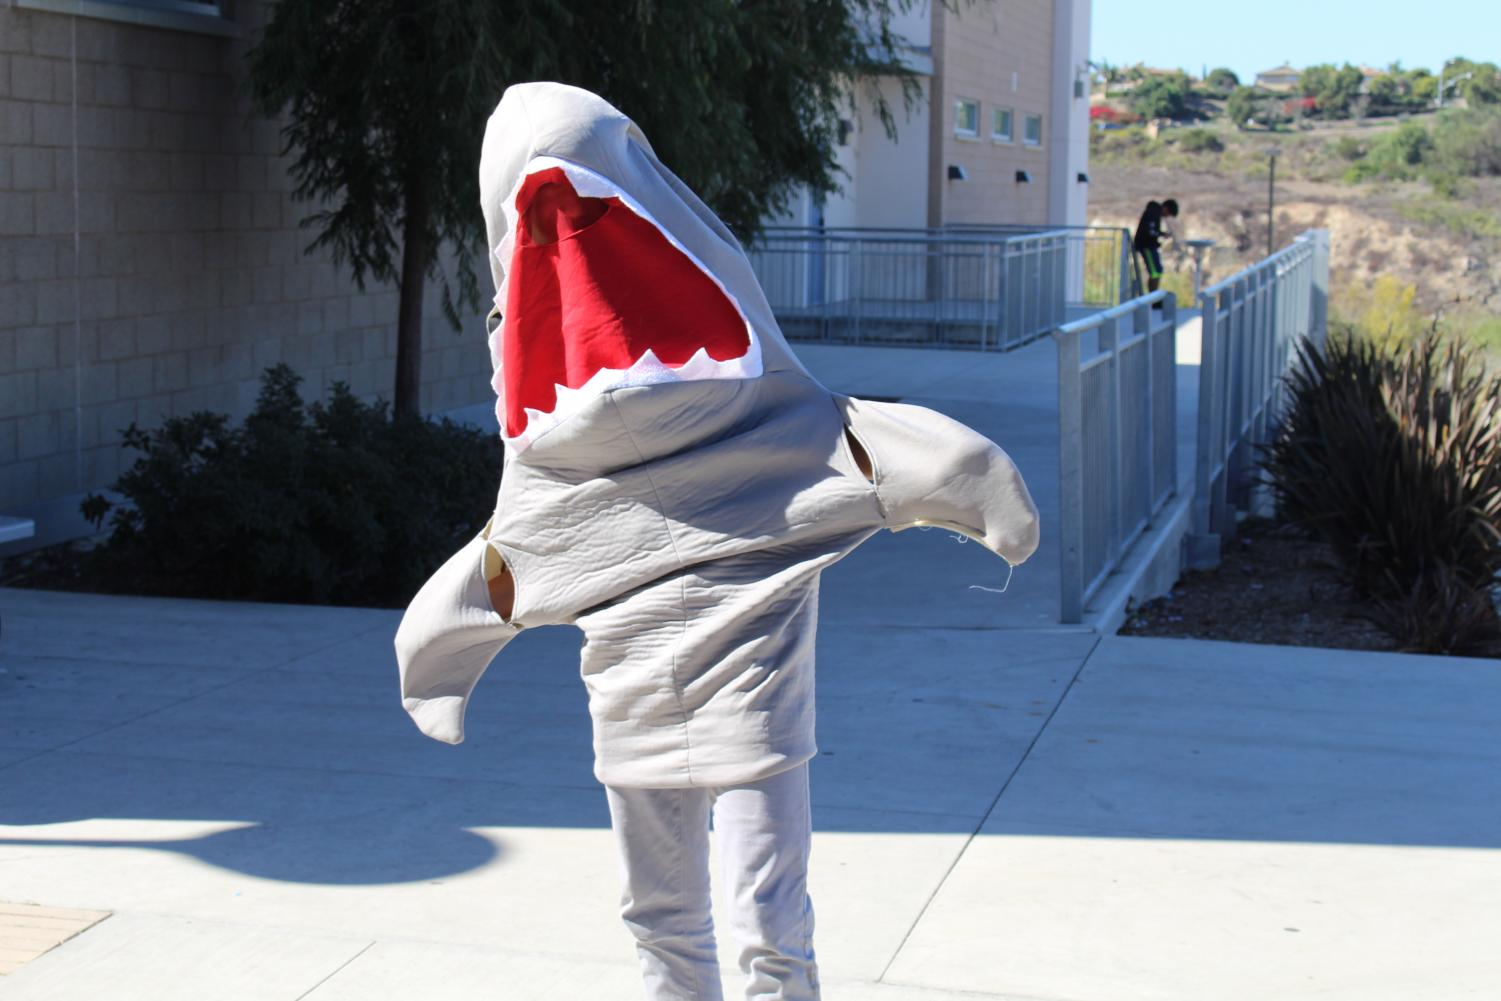 This+Halloween%2C+jaws+were+certainly+dropping+at+the+sight+of+all+of+the+ghouls+and+goblins+on+campus.+Some+students+dressed+as+humans%2C+some+as+sharks+and+many+used+their+costumes+for+Halloween+as+a+way+to+spread+spirit+throughout+the+school.